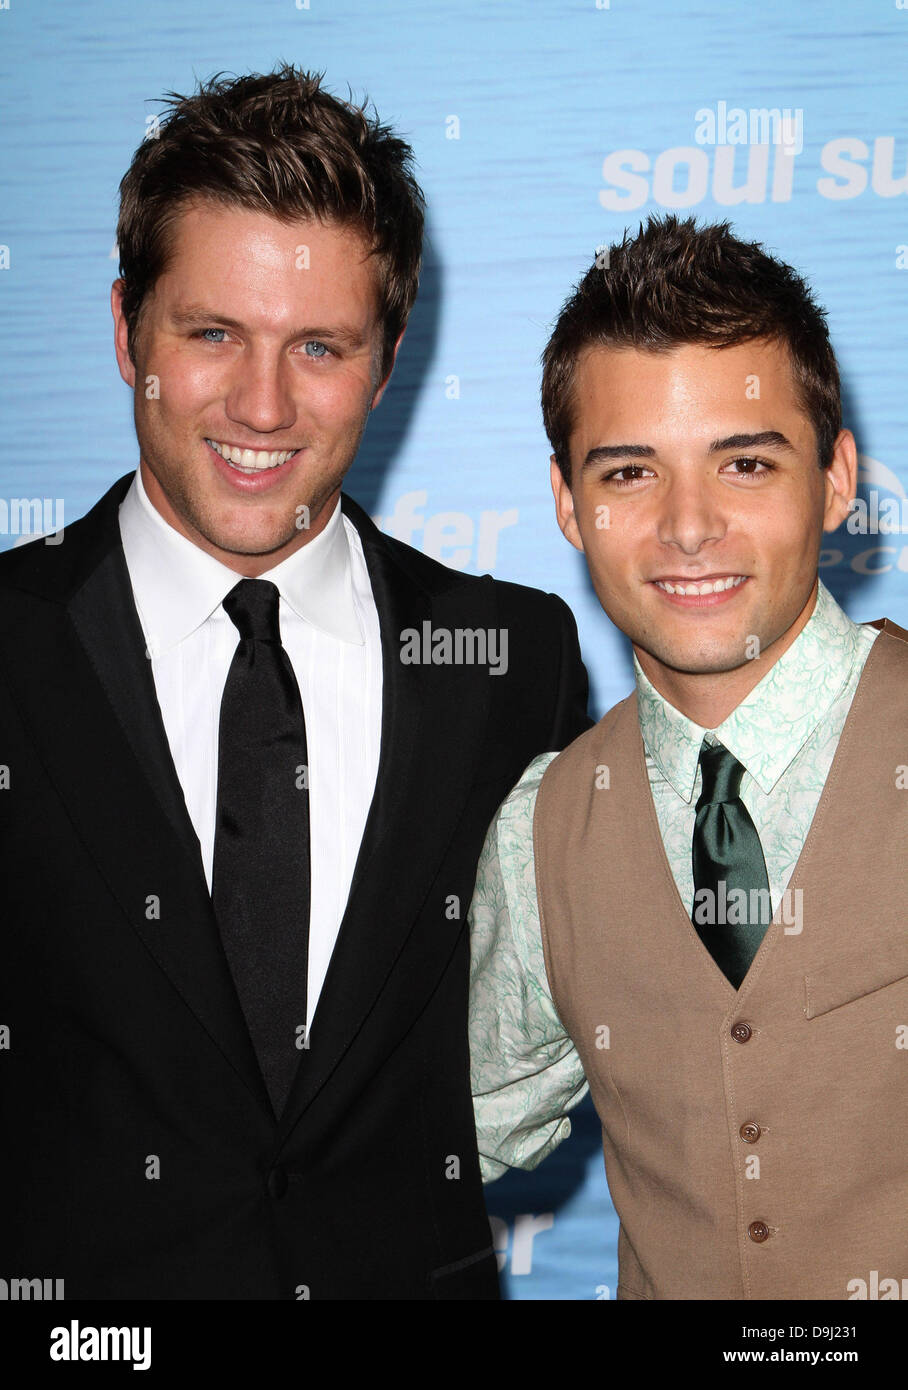 Ross Thomas, Cody Gomes 'Soul Surfer' Los Angeles Premiere Held At the ArcLight Cinerama Dome Hollywood, - Stock Image